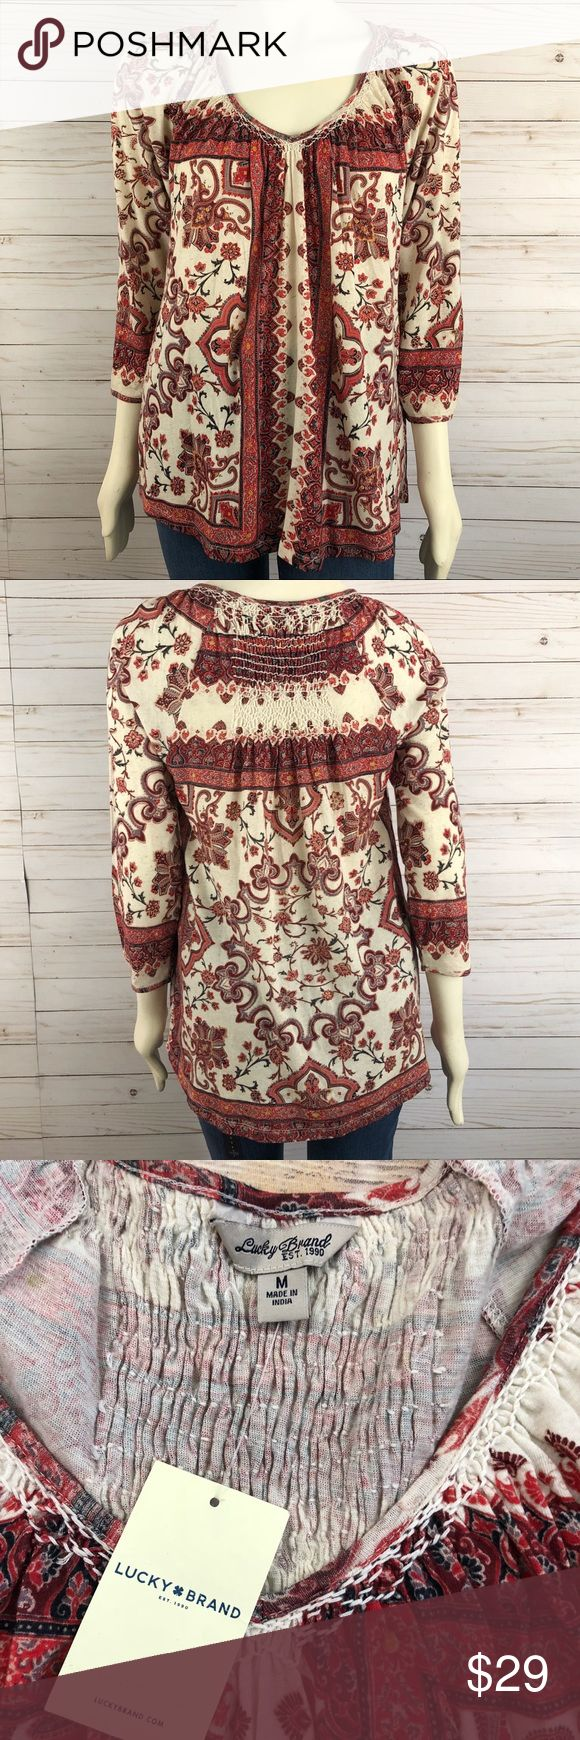 Lucky brand bohemian print top NWT Lucky brand Bohemian style/boho print/floral   3/4 sleeves, elastic at sleeve hem Loose flowy fit  Smocked in between shoulder blades Combo multicolor, burnt orange, red etc Lucky Brand Tops